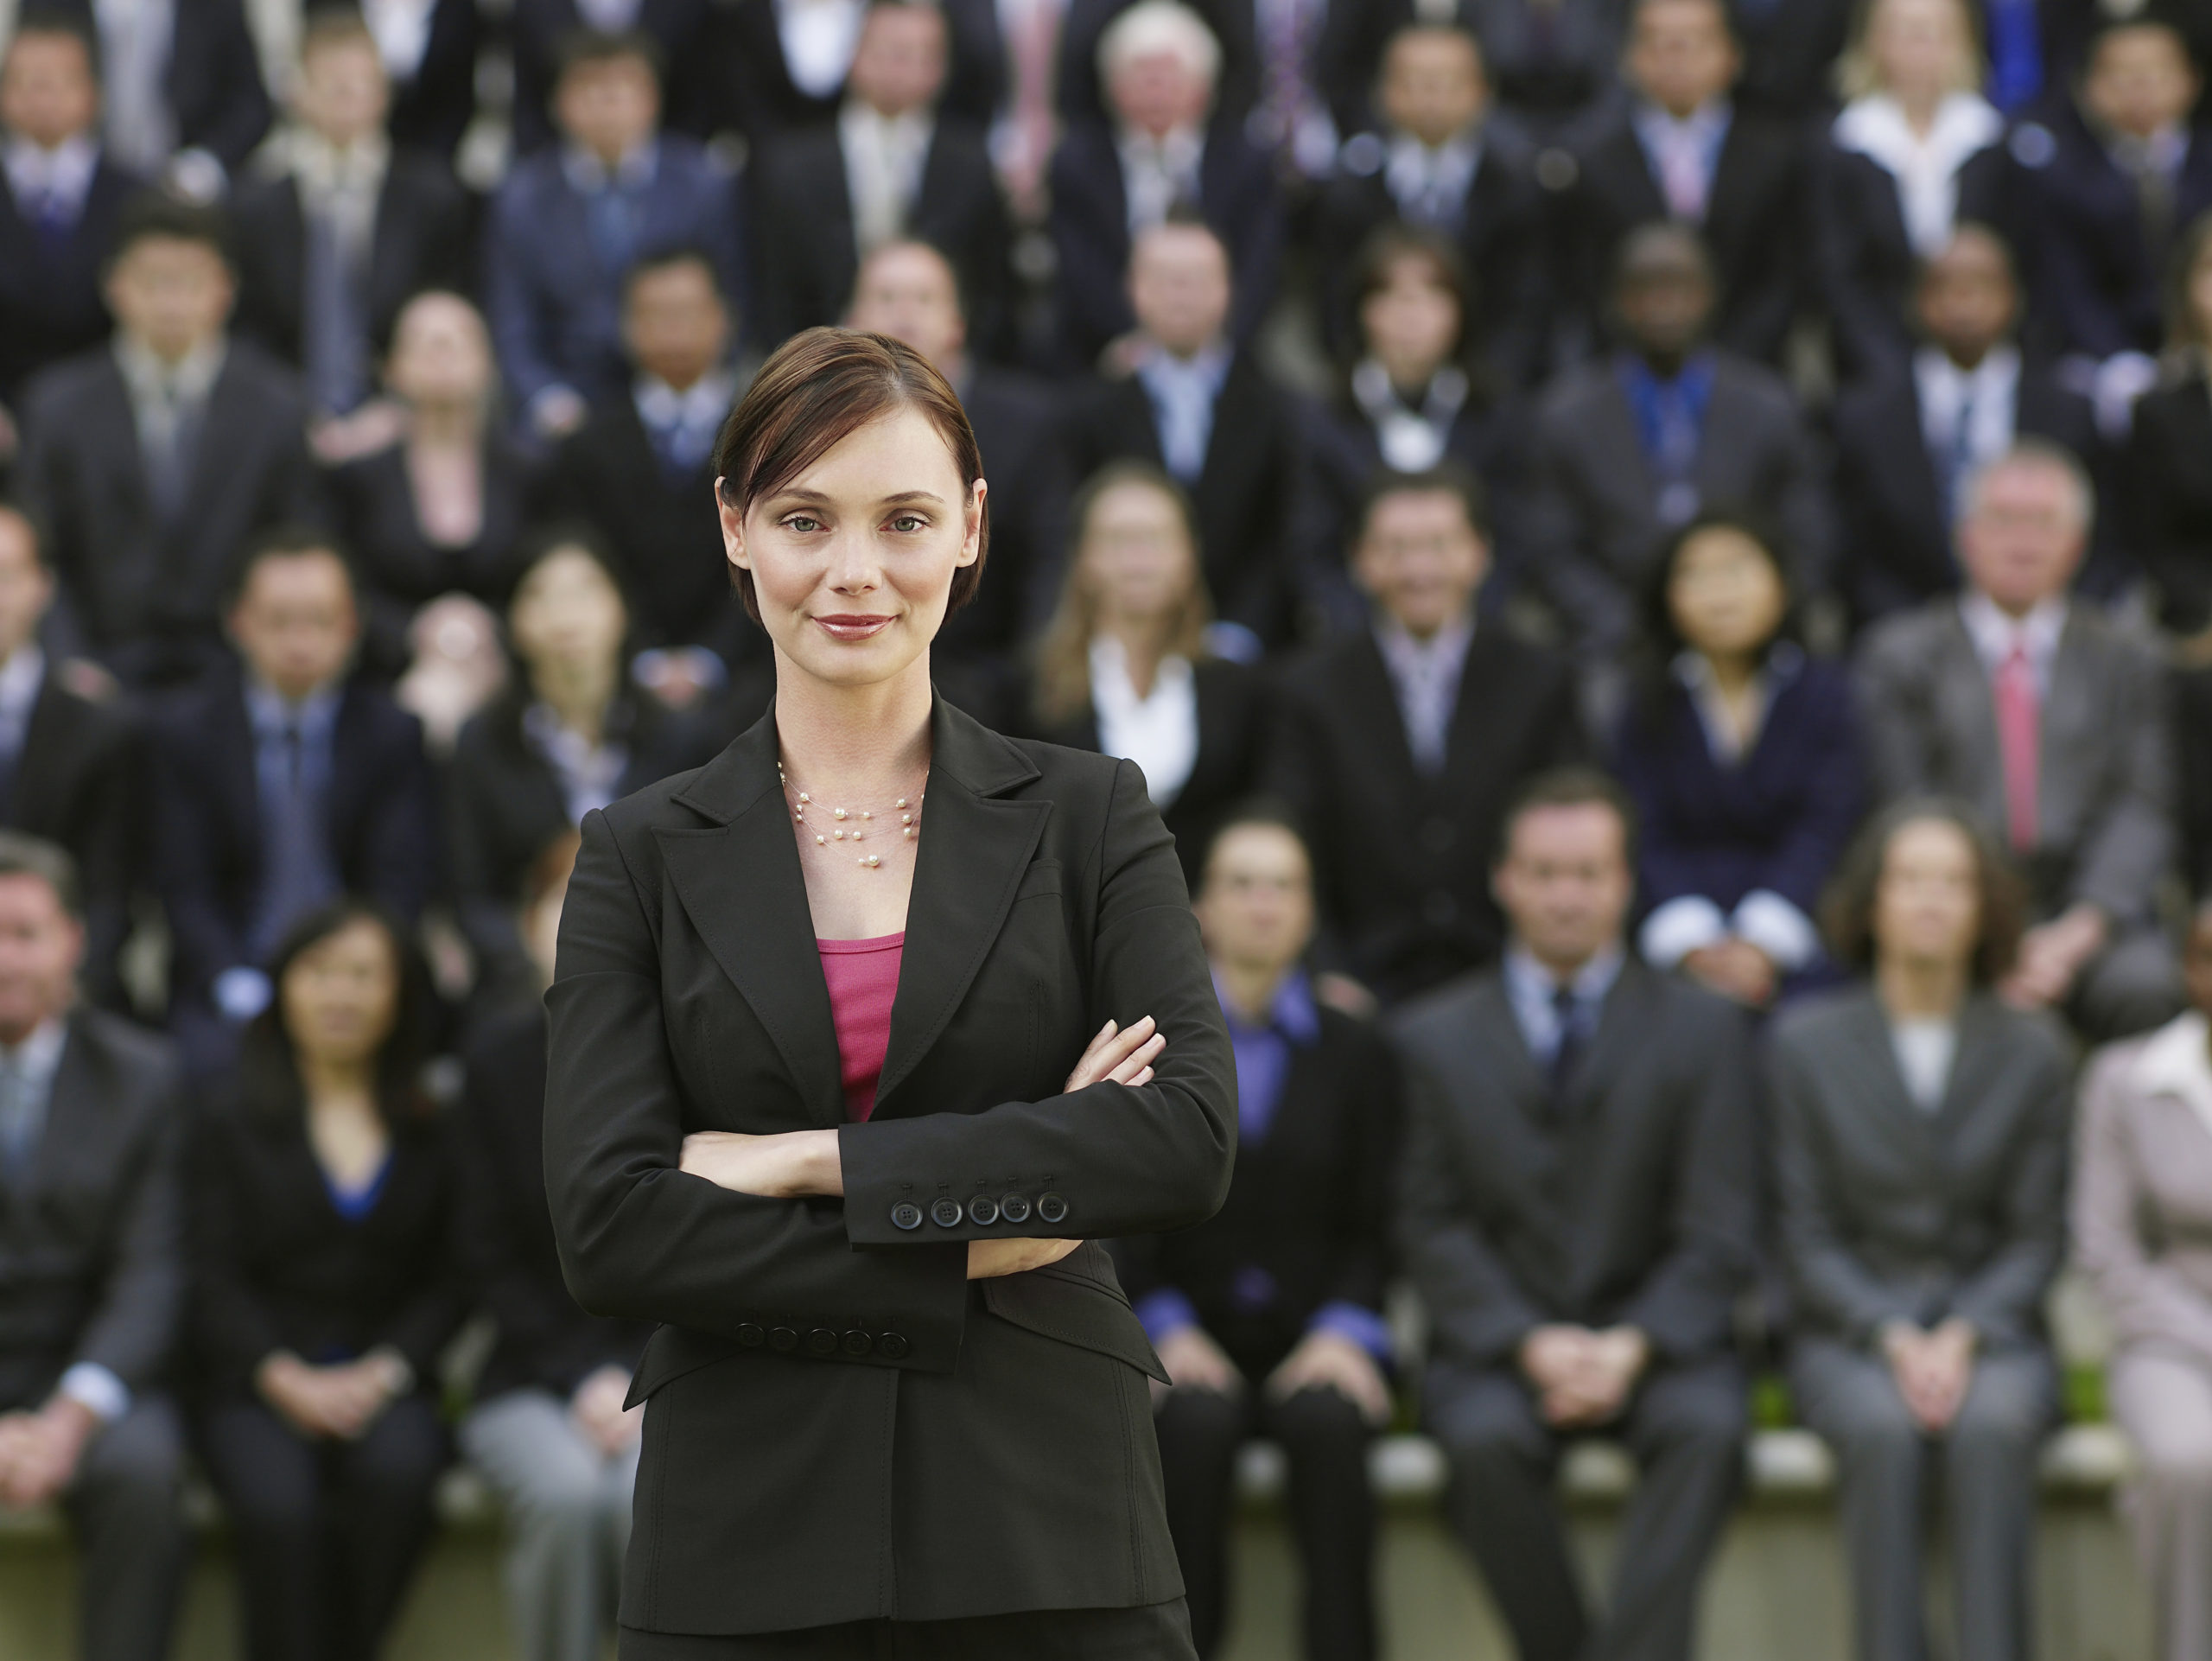 What Can I Do with a Bachelor's Degree in Human Resources?